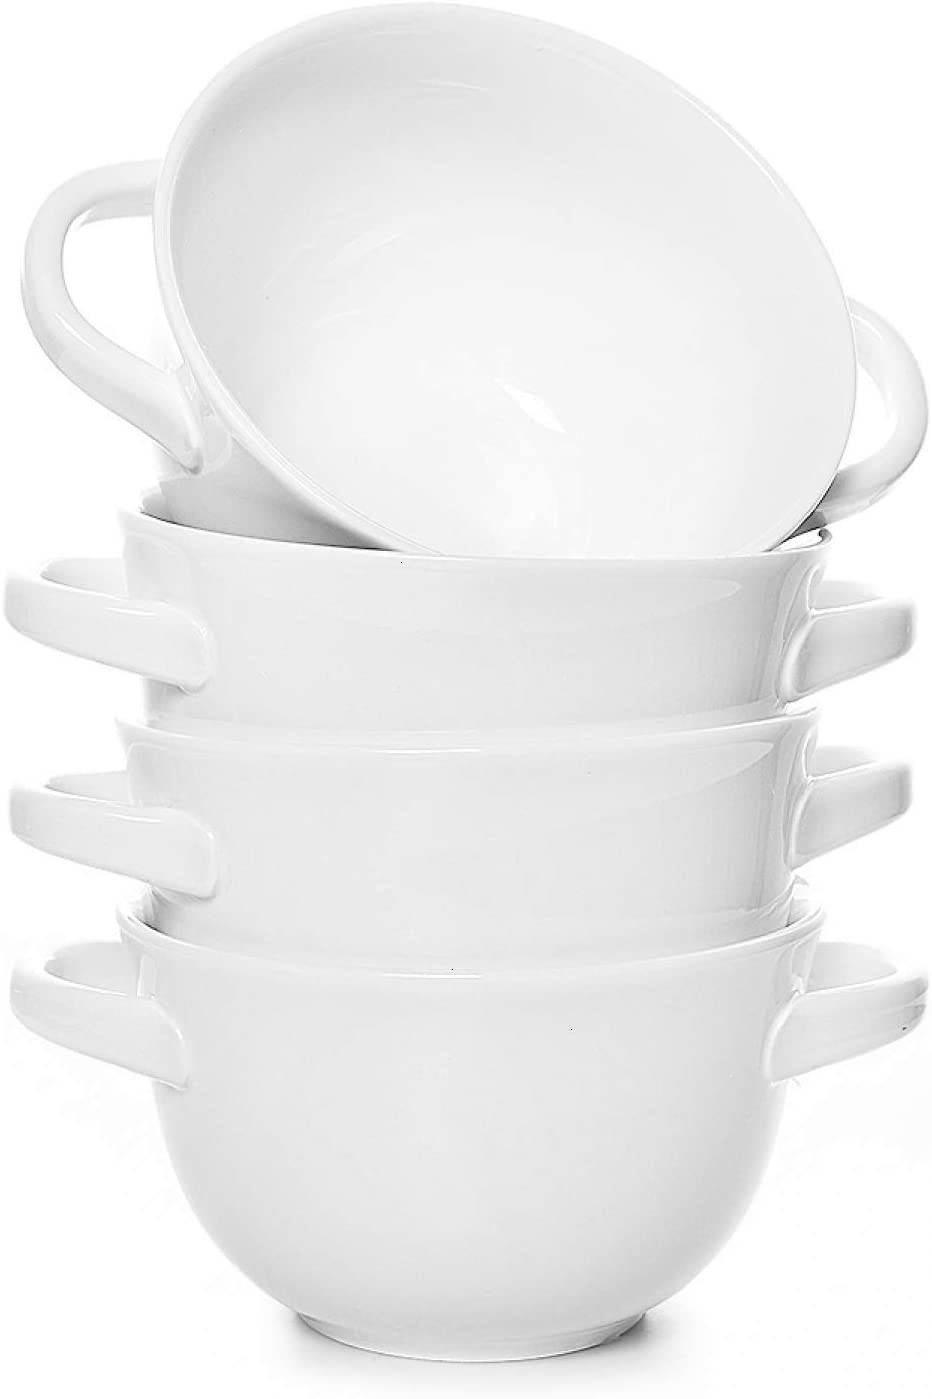 Rocinha Soup Bowls with Handles Set of 4 Soup Bowl 22 Ounce French Onion Soup Bowls Microwave Oven Safe for Soup, Stew, Chilli